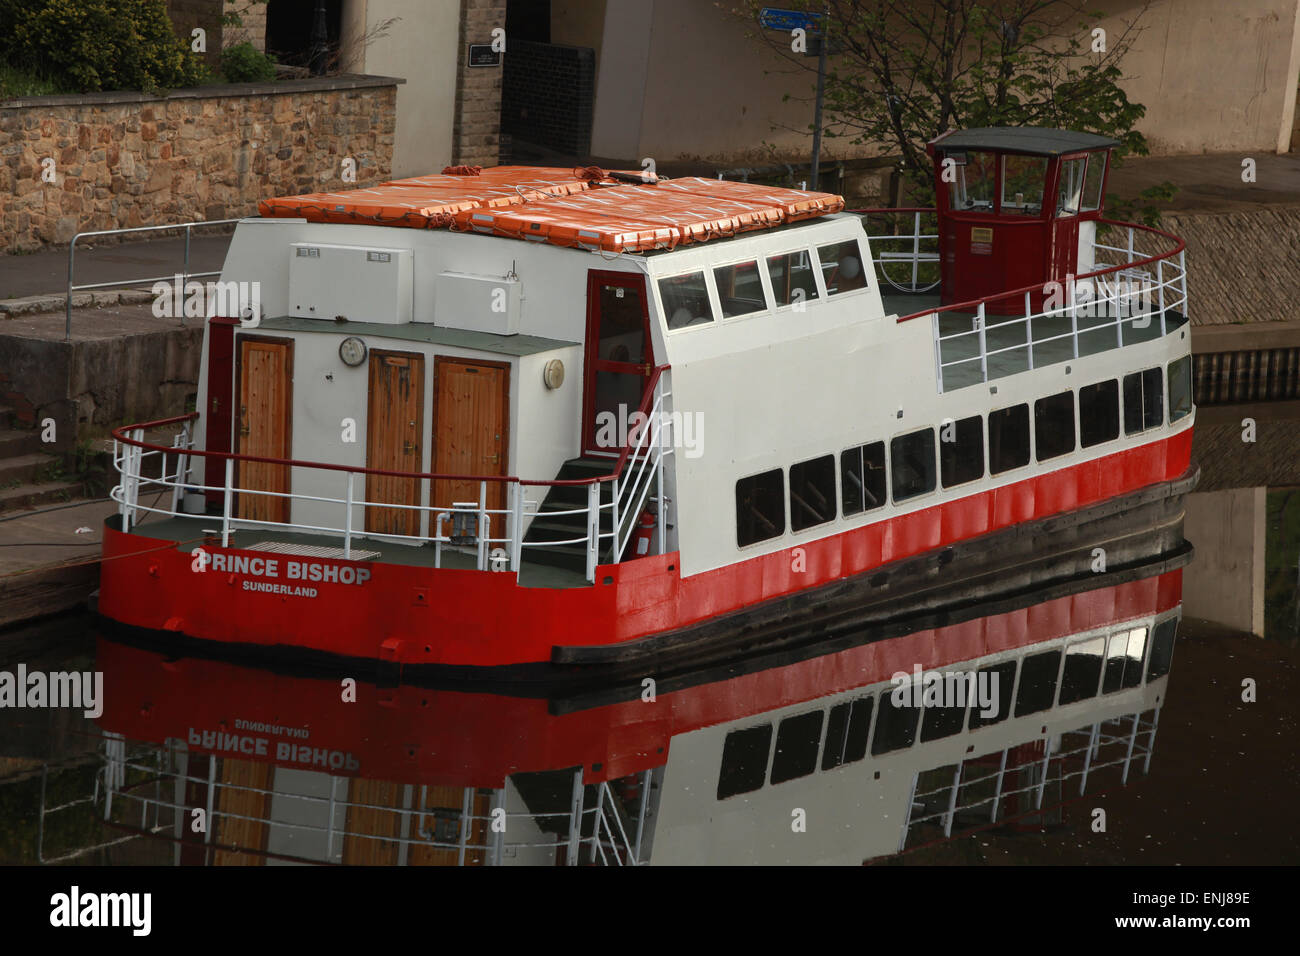 Prince Bishop pleasure boat on the River Wear Durham City Centre - Stock Image